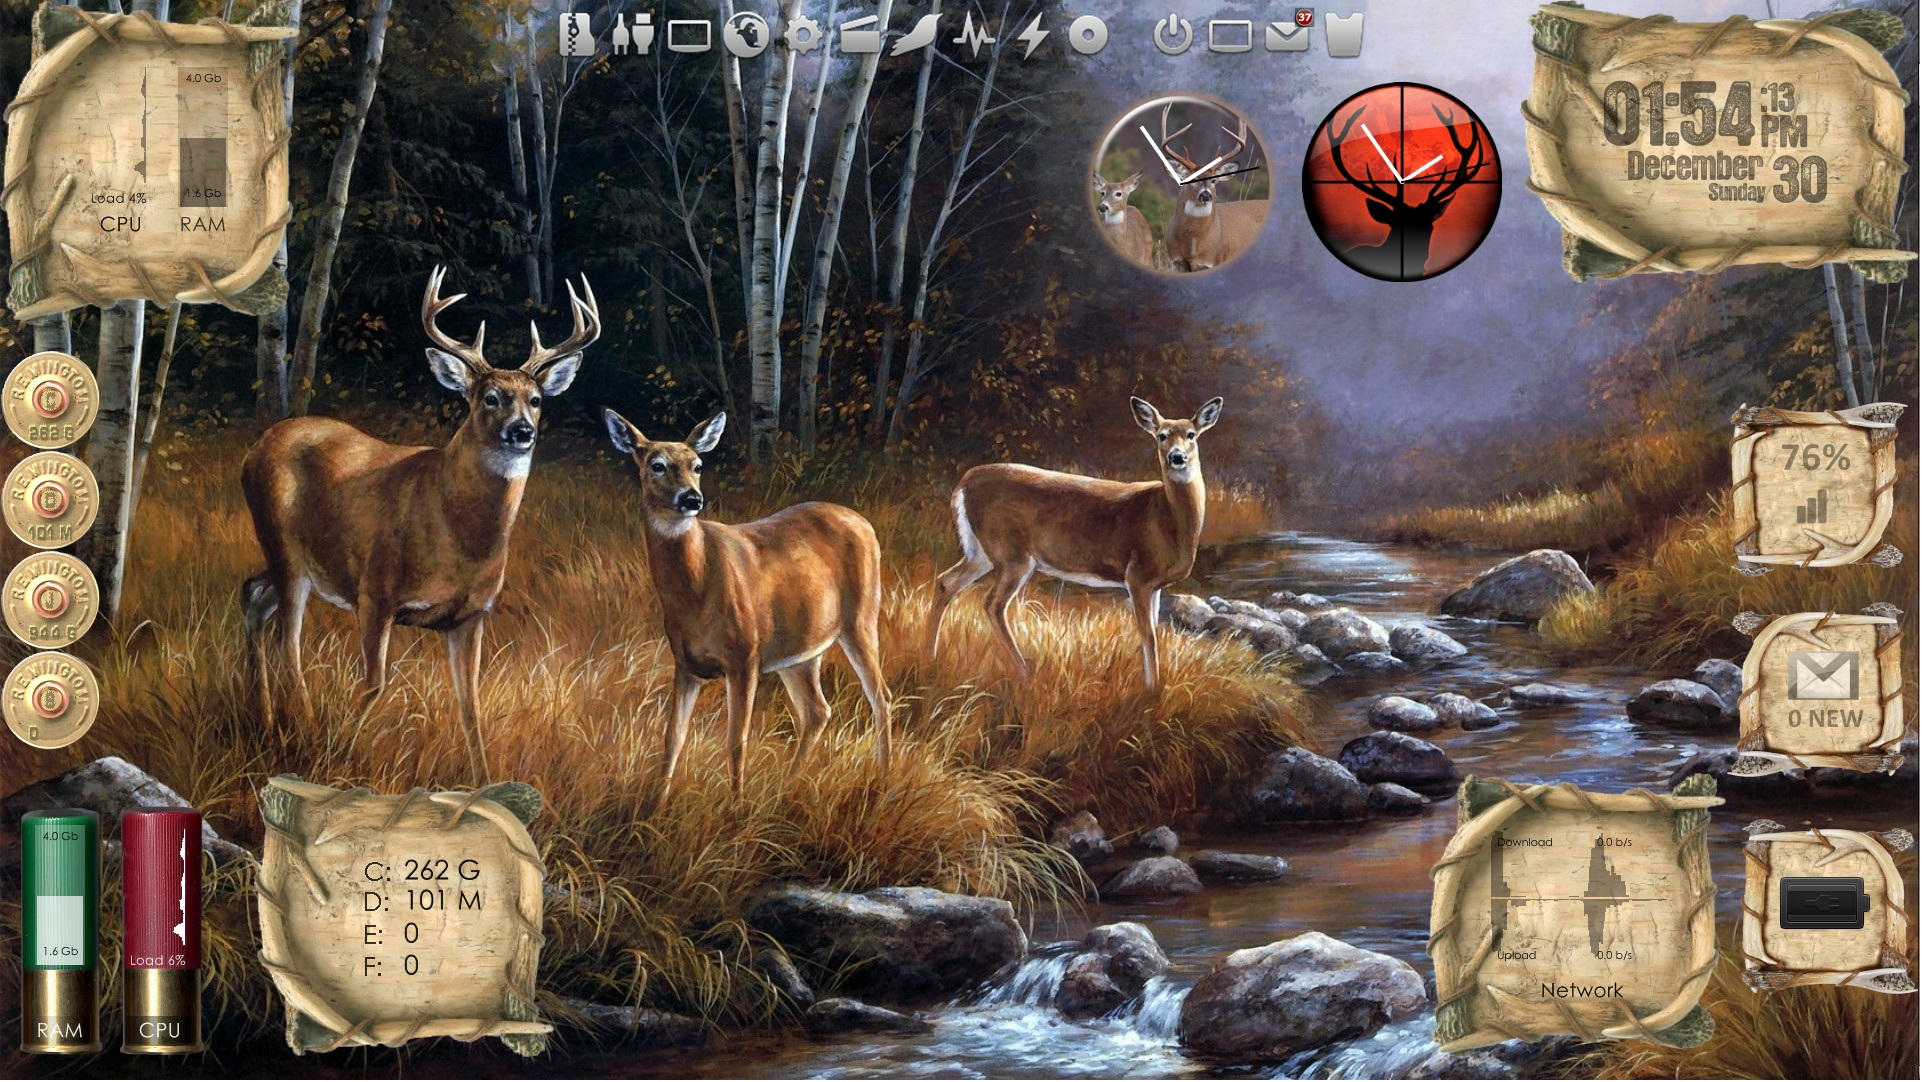 Outdoor Living - Deer - Desktop for Rainmeter v1.1 by ionstorm01